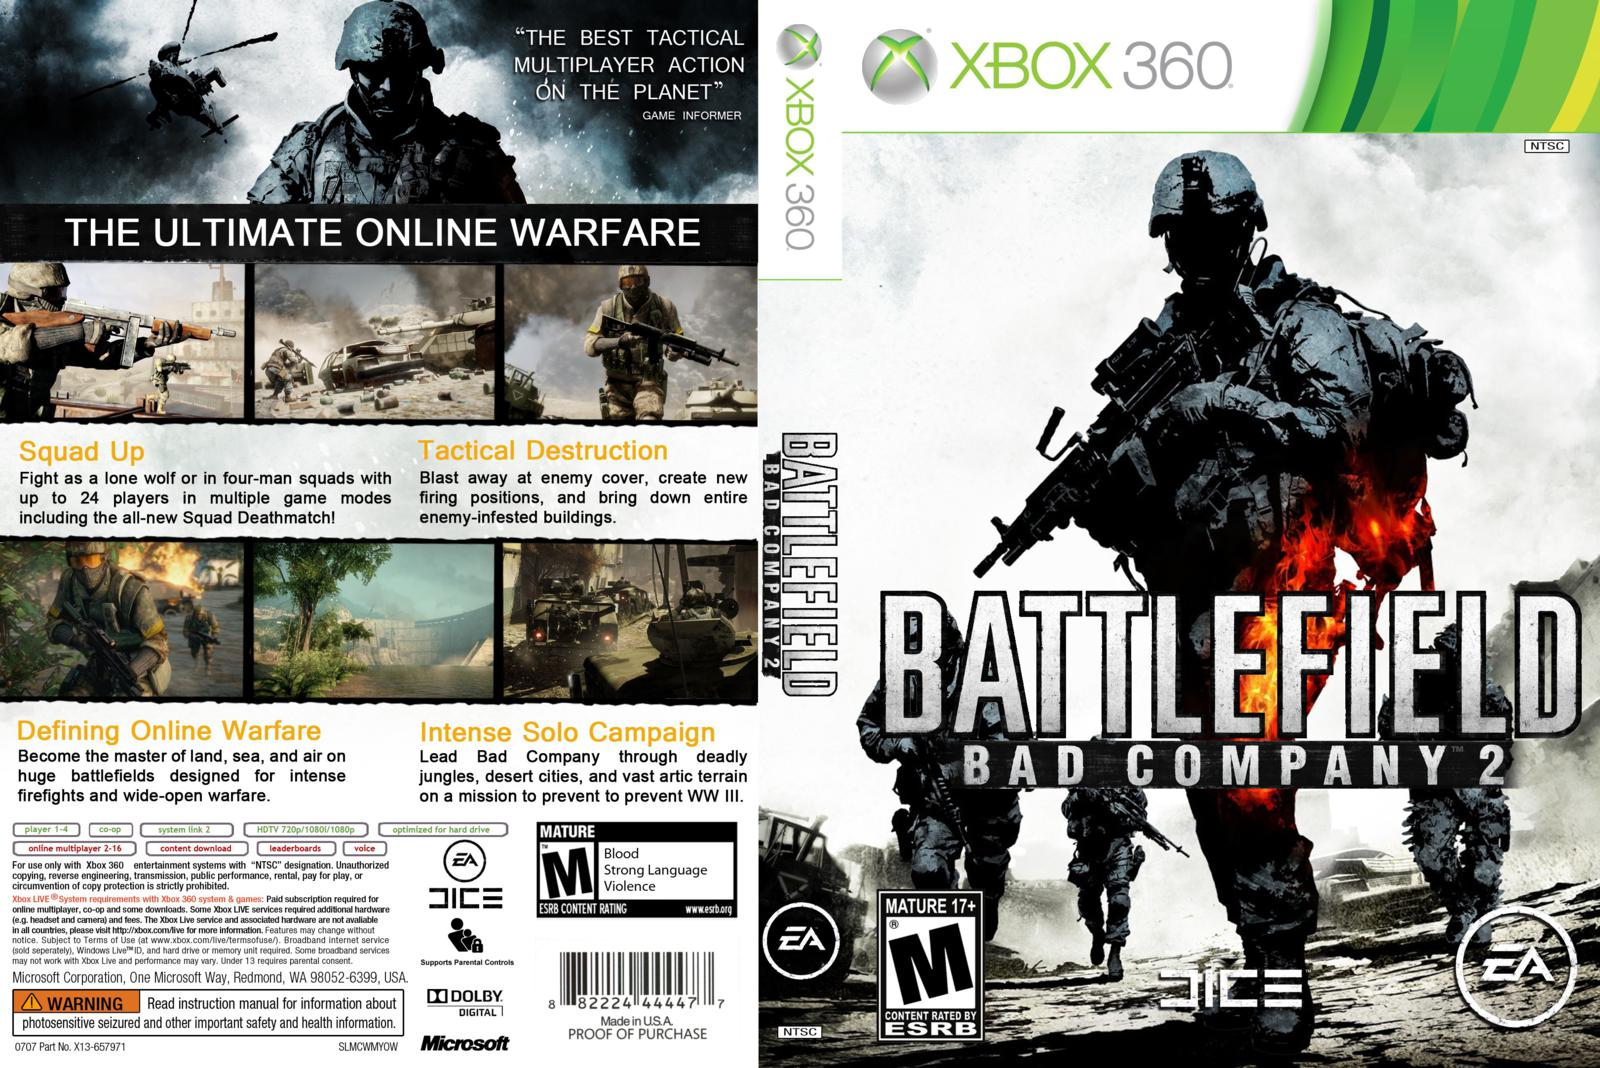 How to download and install battlefield bad company 2 on windows 8.